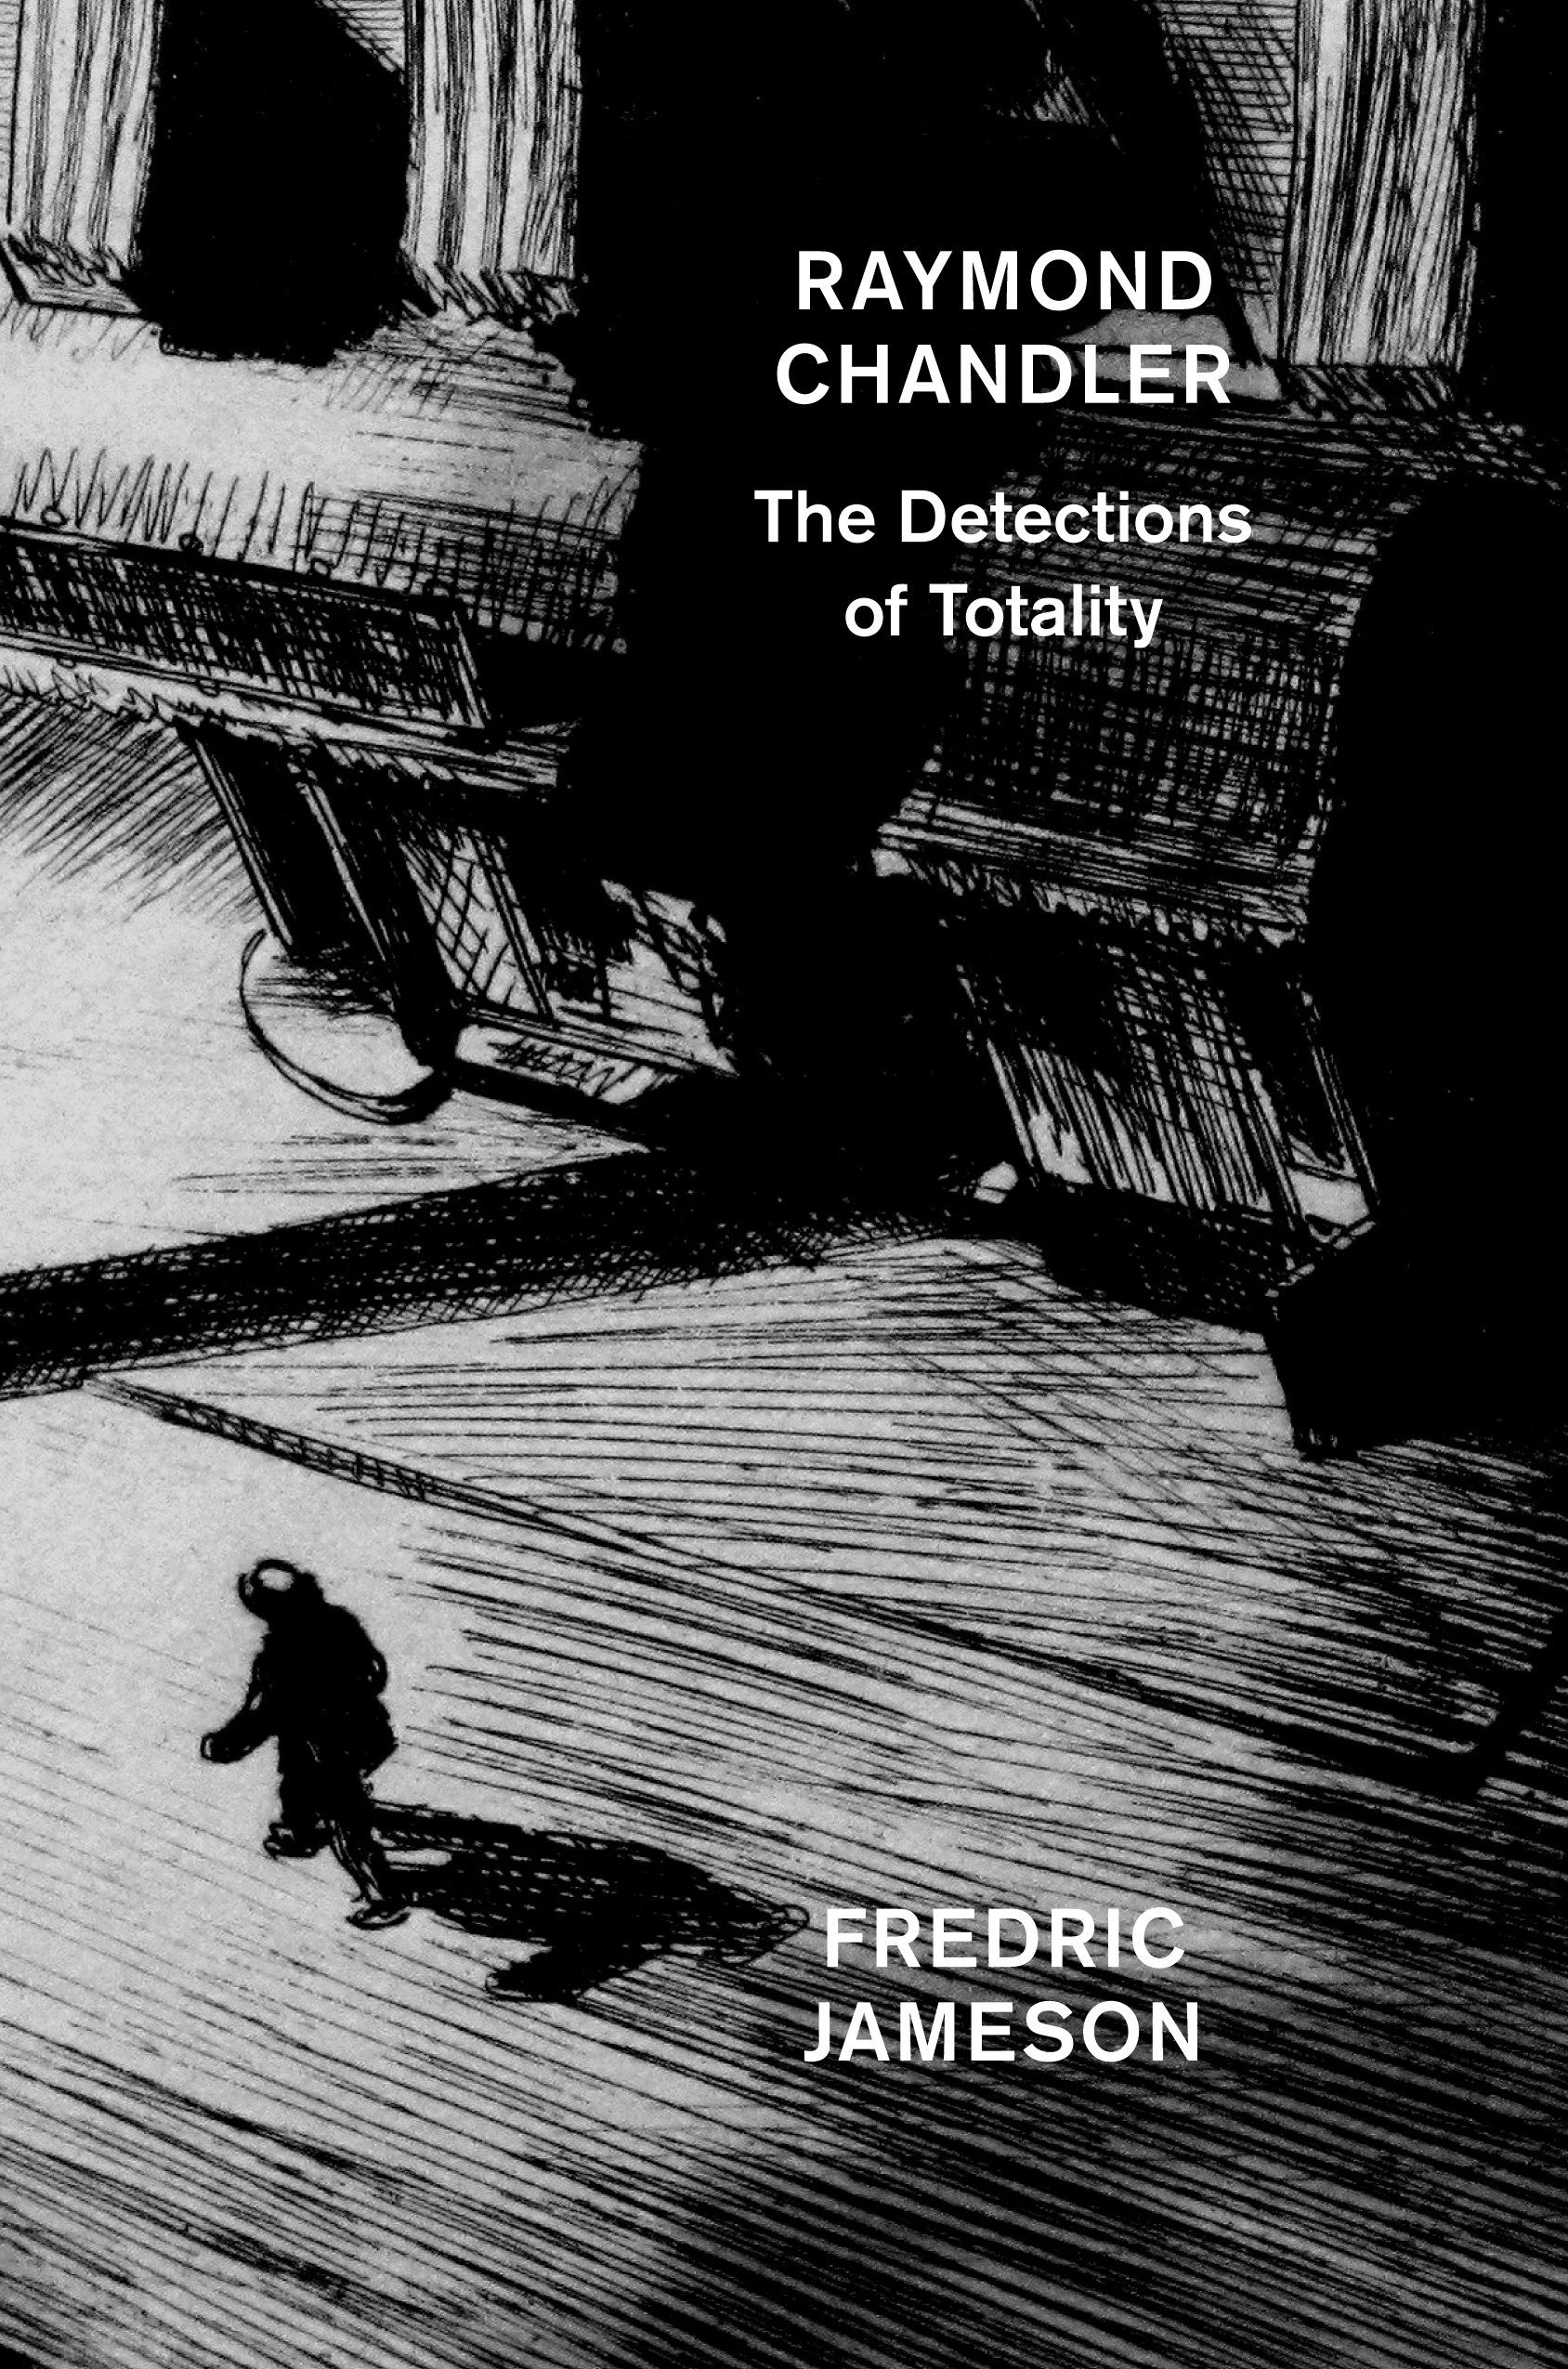 Download Raymond Chandler: The Detections of Totality ebook